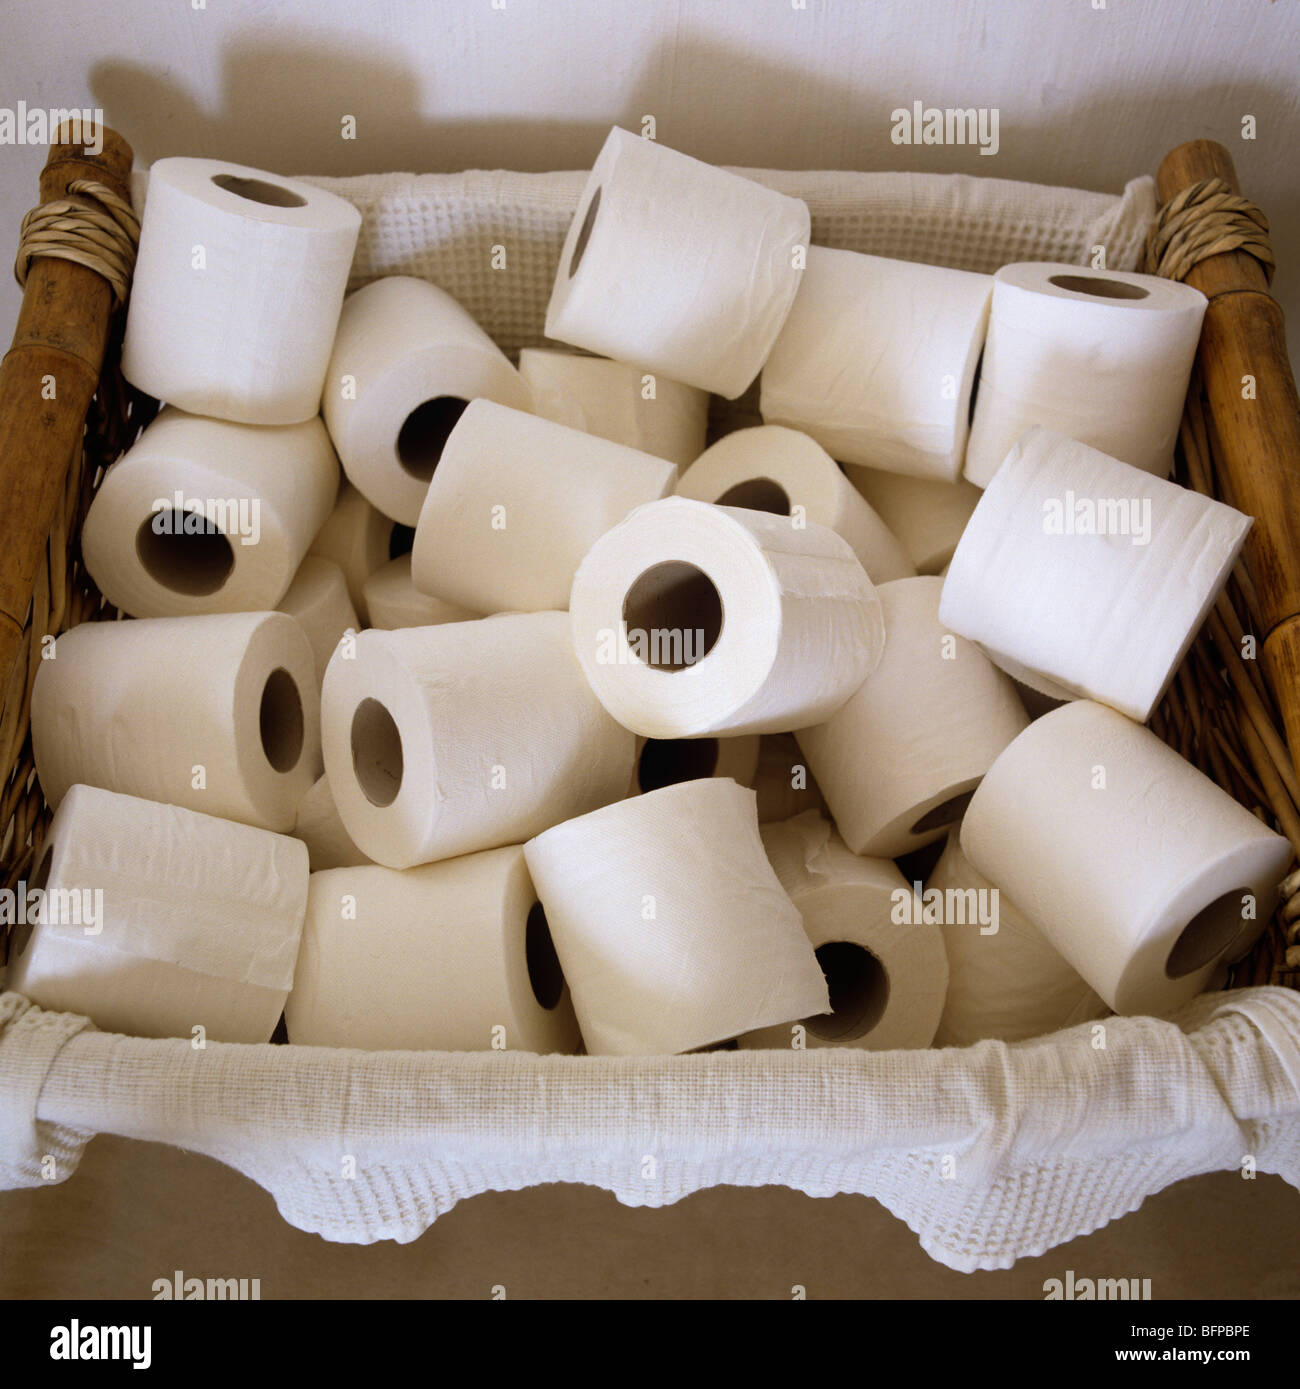 Basket of loo roll/ toilet roll - Stock Image